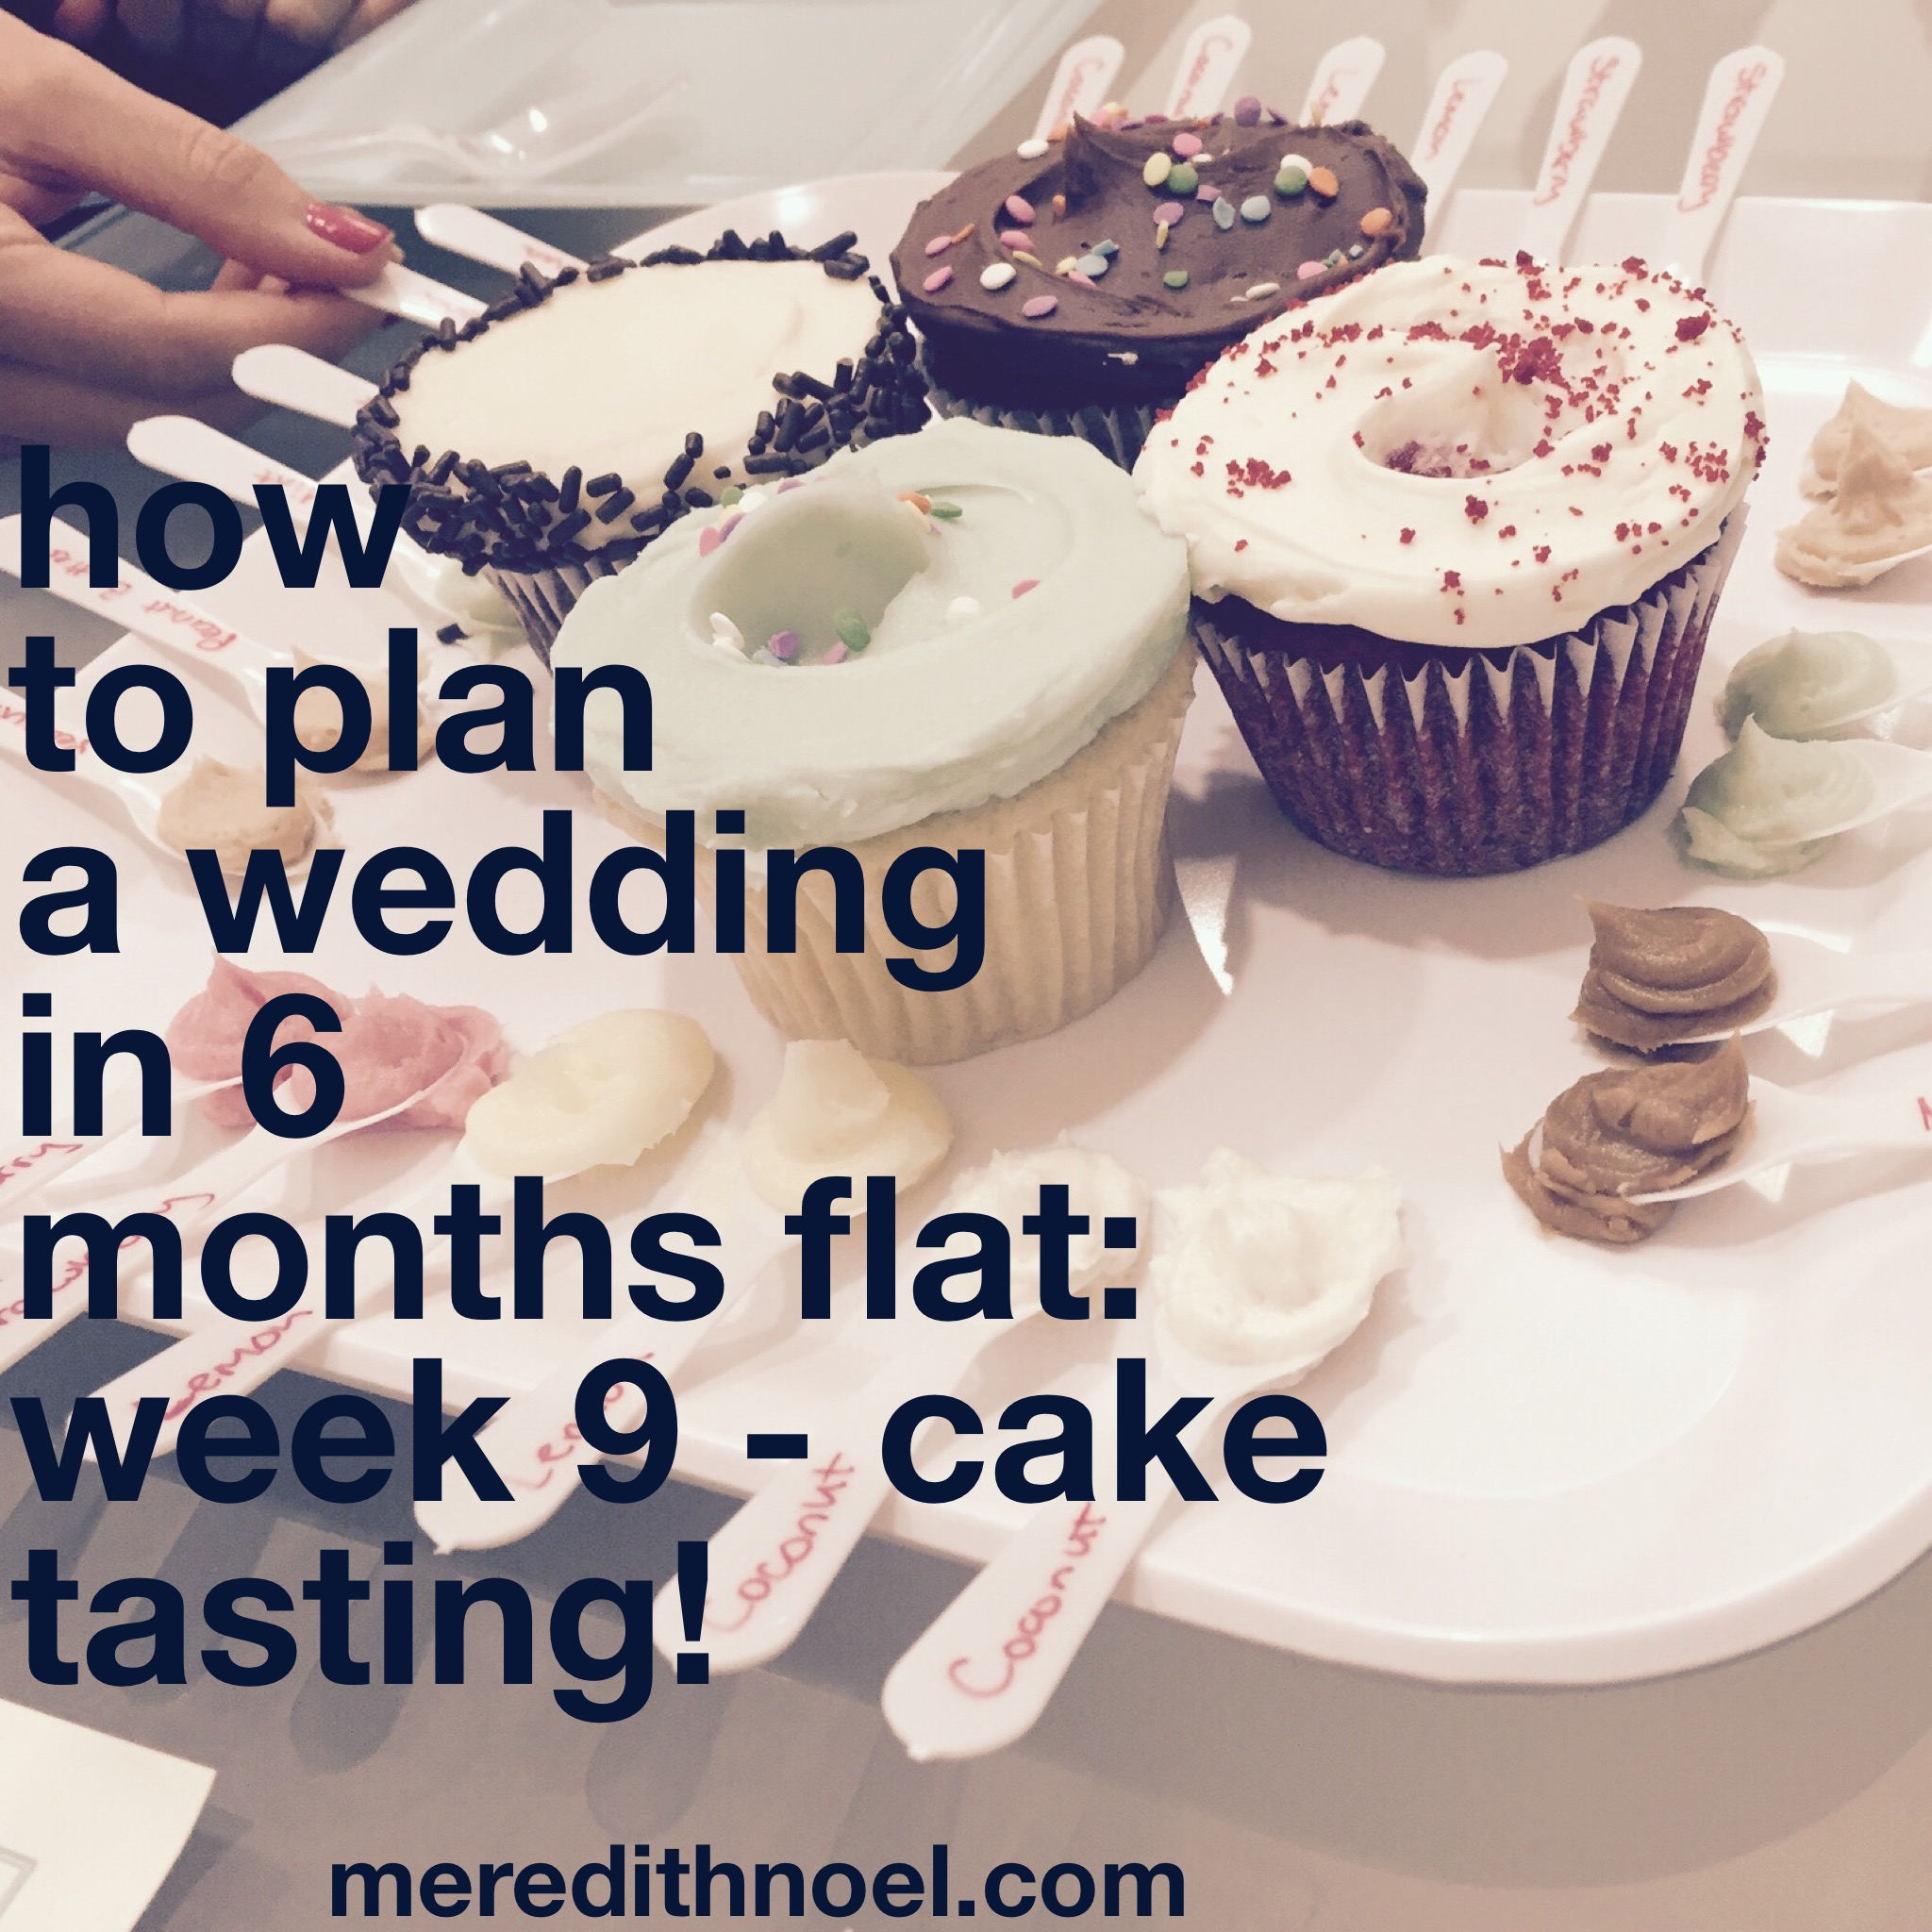 How To Plan A Wedding In 6 Months Flat: Week 9